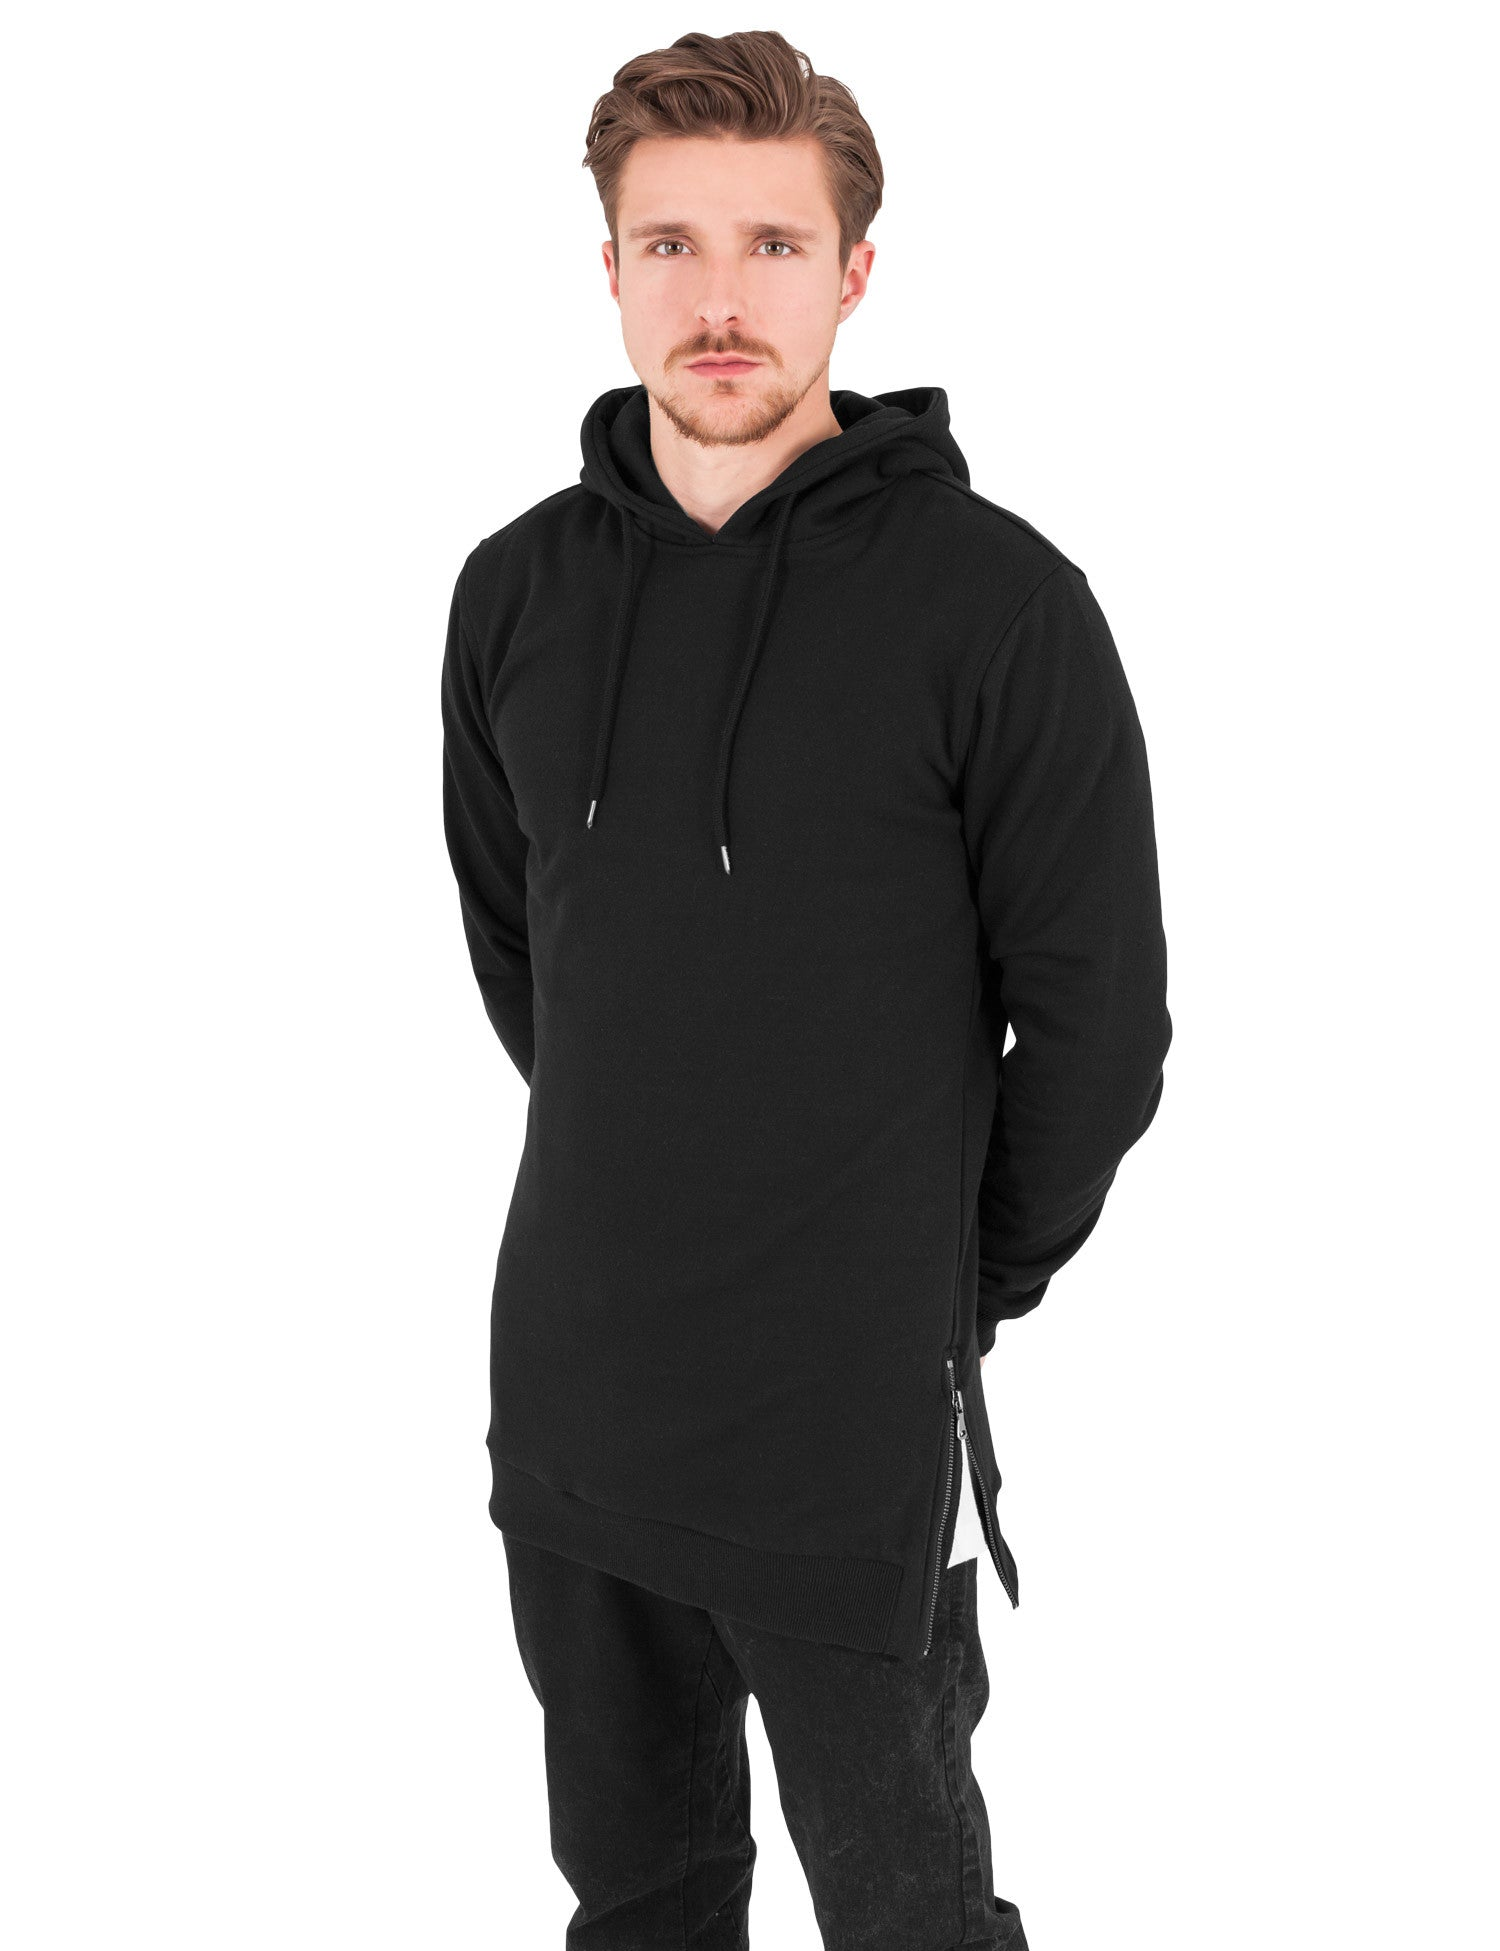 Long Side Zipped Hoody TB1105 Black